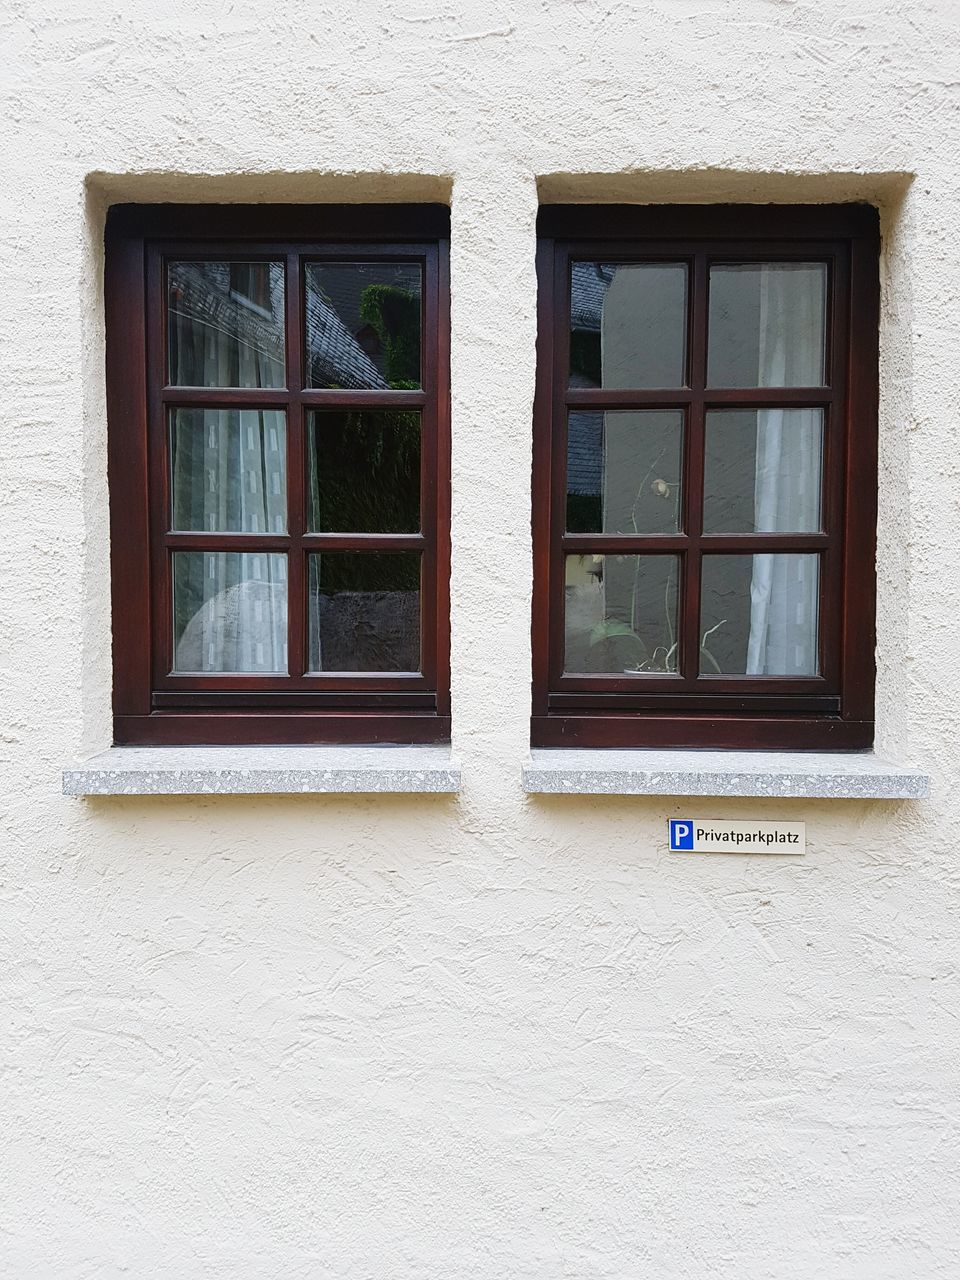 window, architecture, building exterior, built structure, house, window sill, day, no people, outdoors, window box